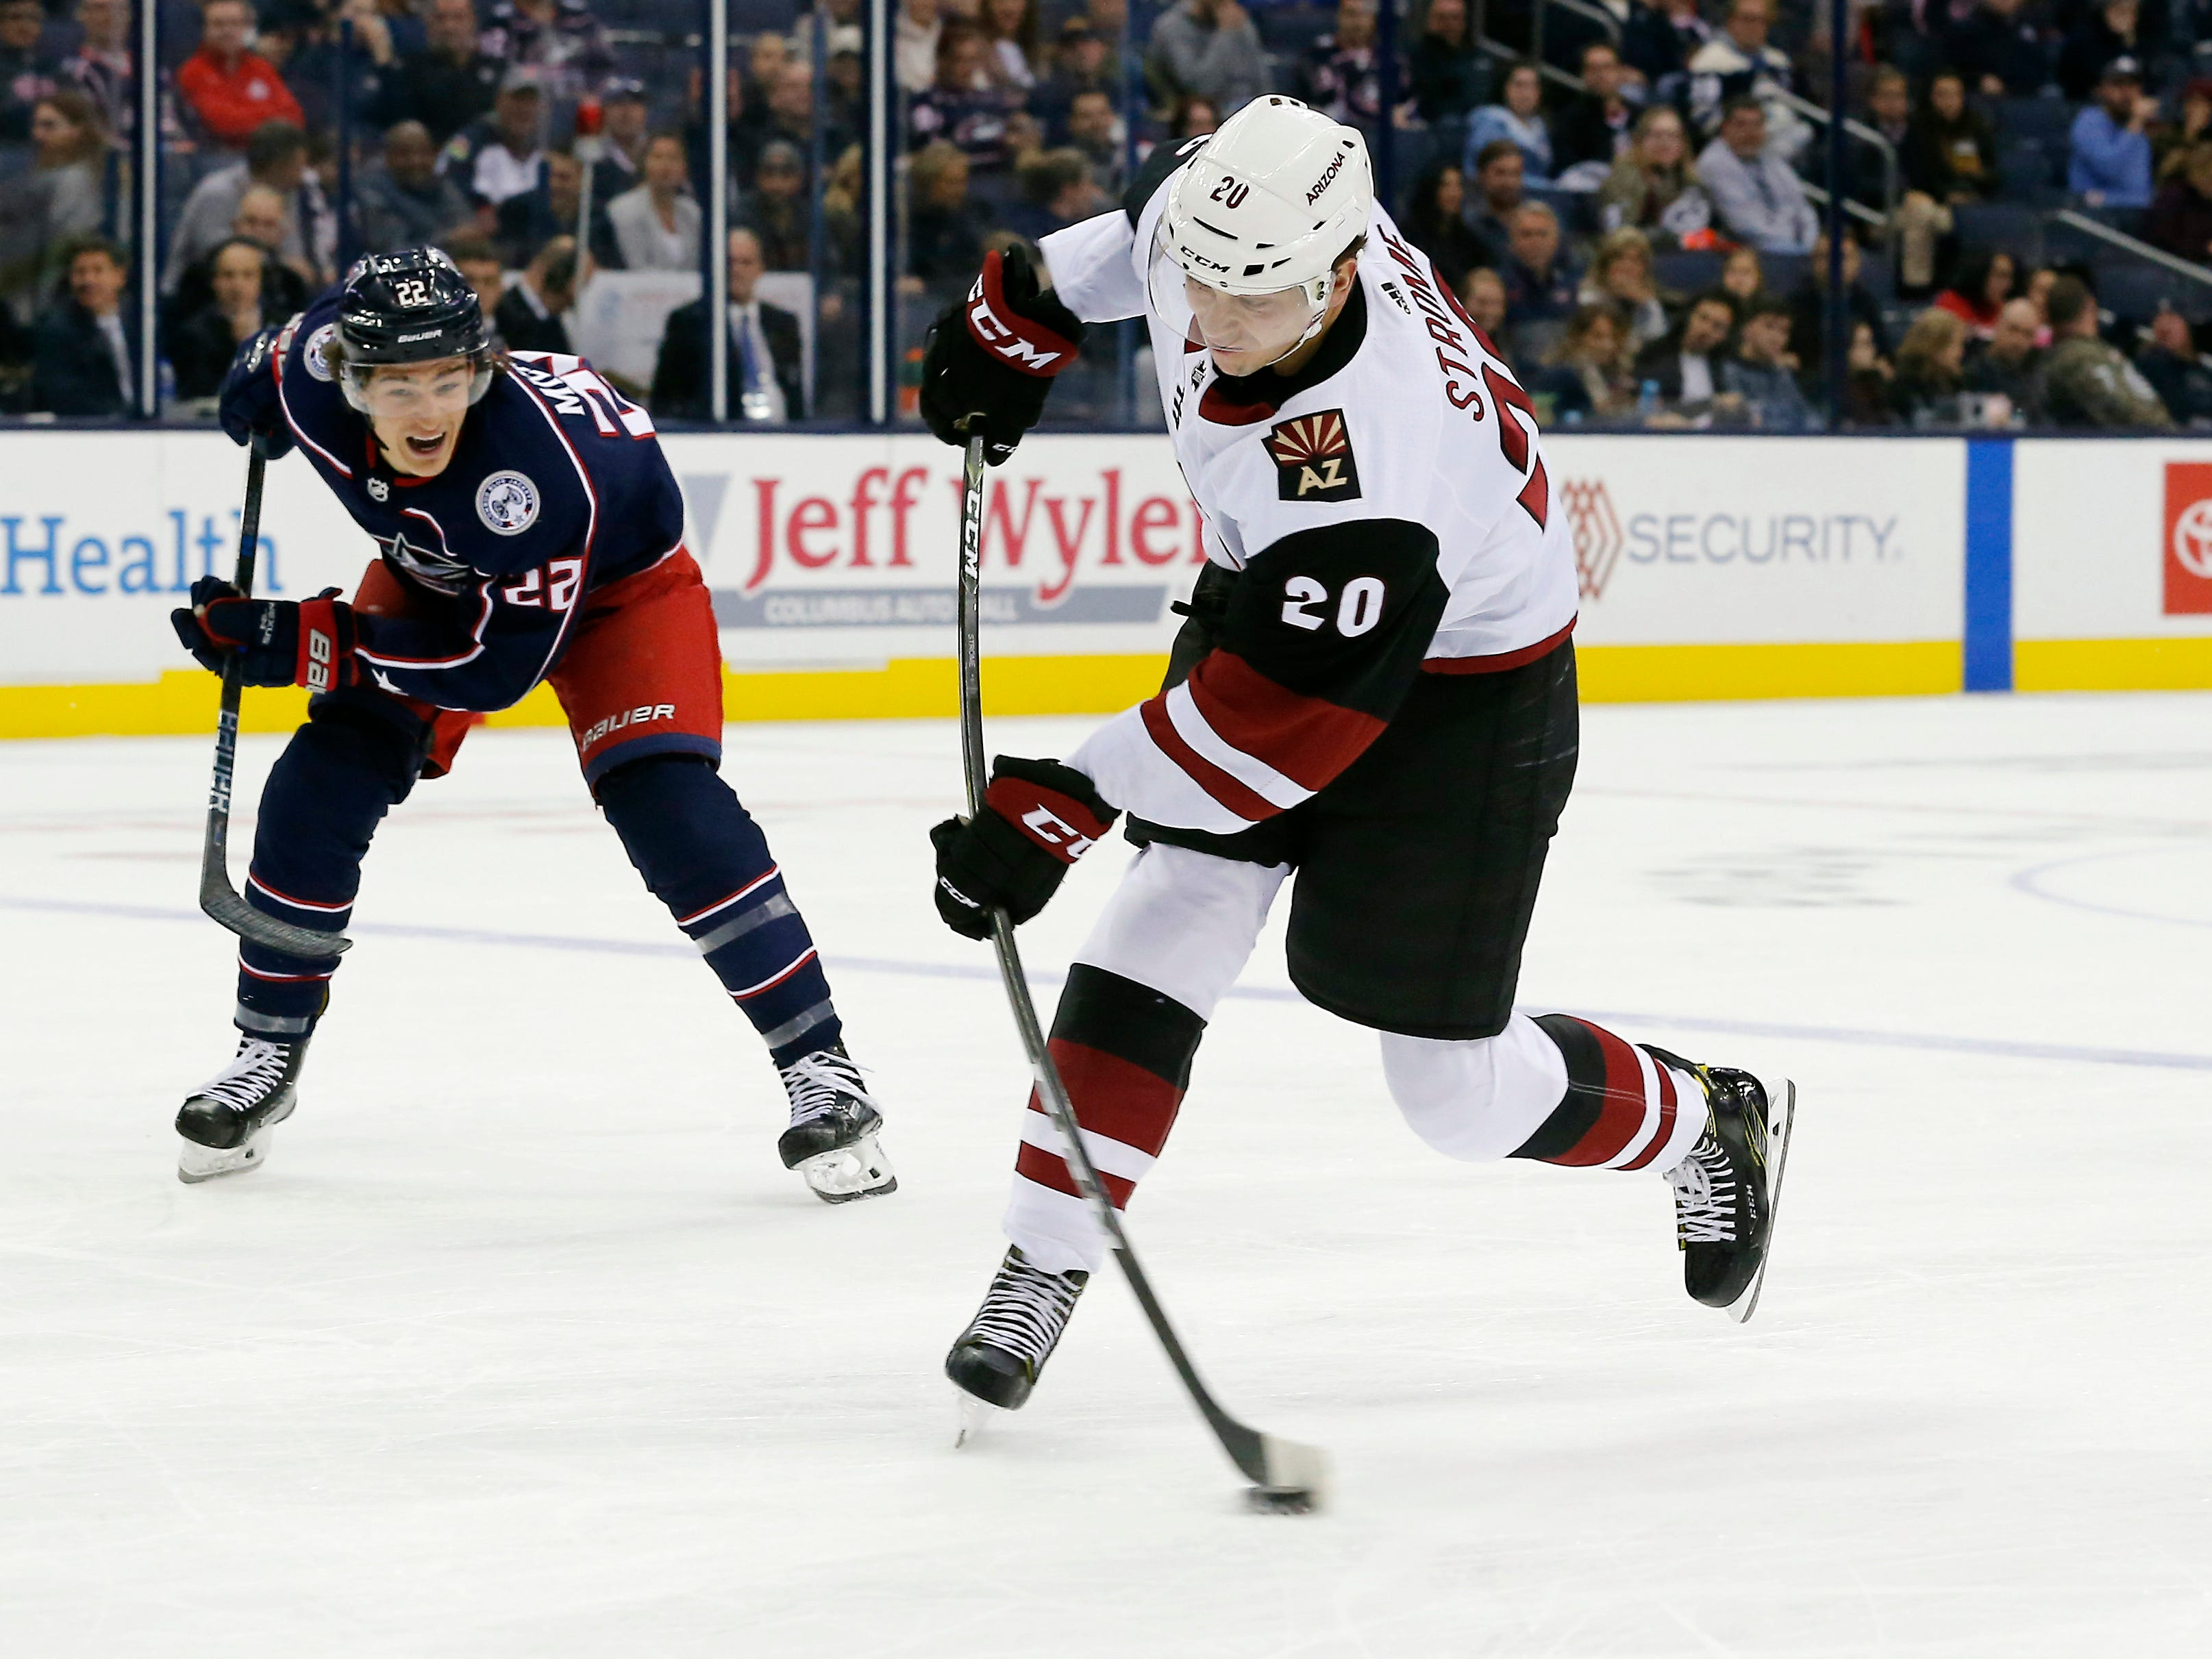 Oct 23, 2018; Columbus, OH, USA; Arizona Coyotes center Dylan Strome (20) attempts a shot on goal against the Columbus Blue Jackets during the second period at Nationwide Arena.